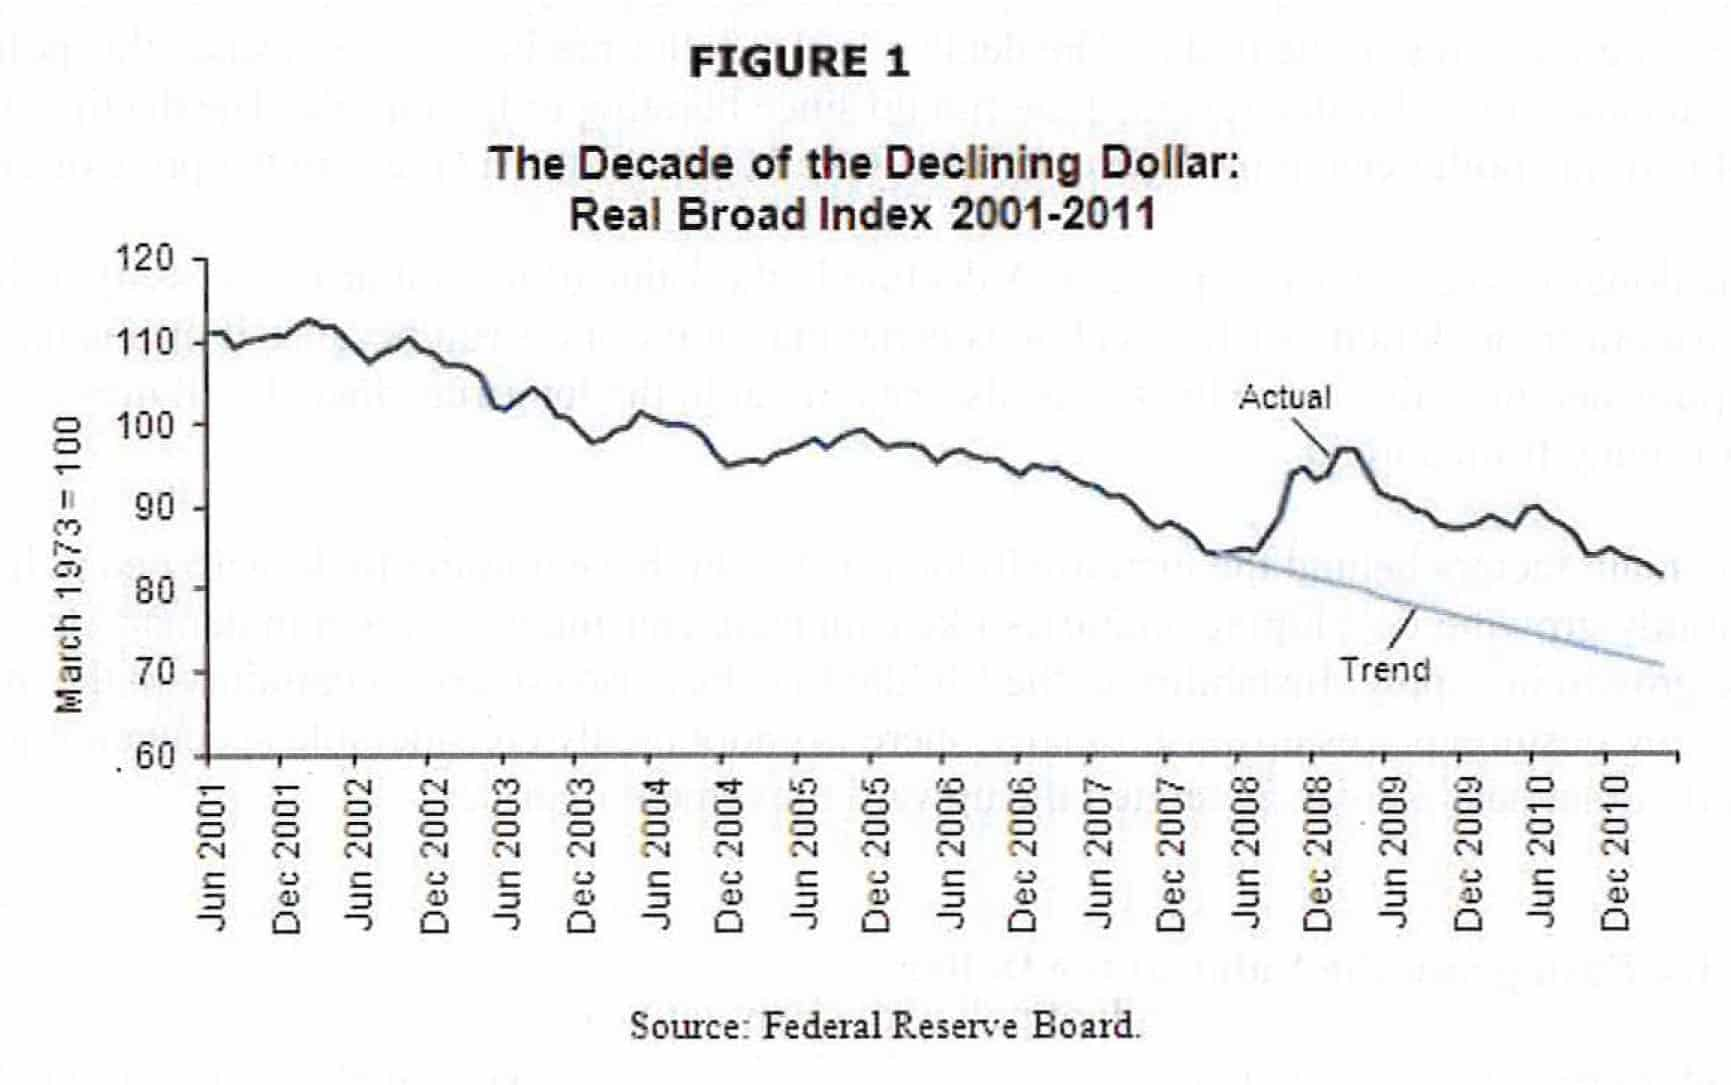 The Decade of the Declining Dollar